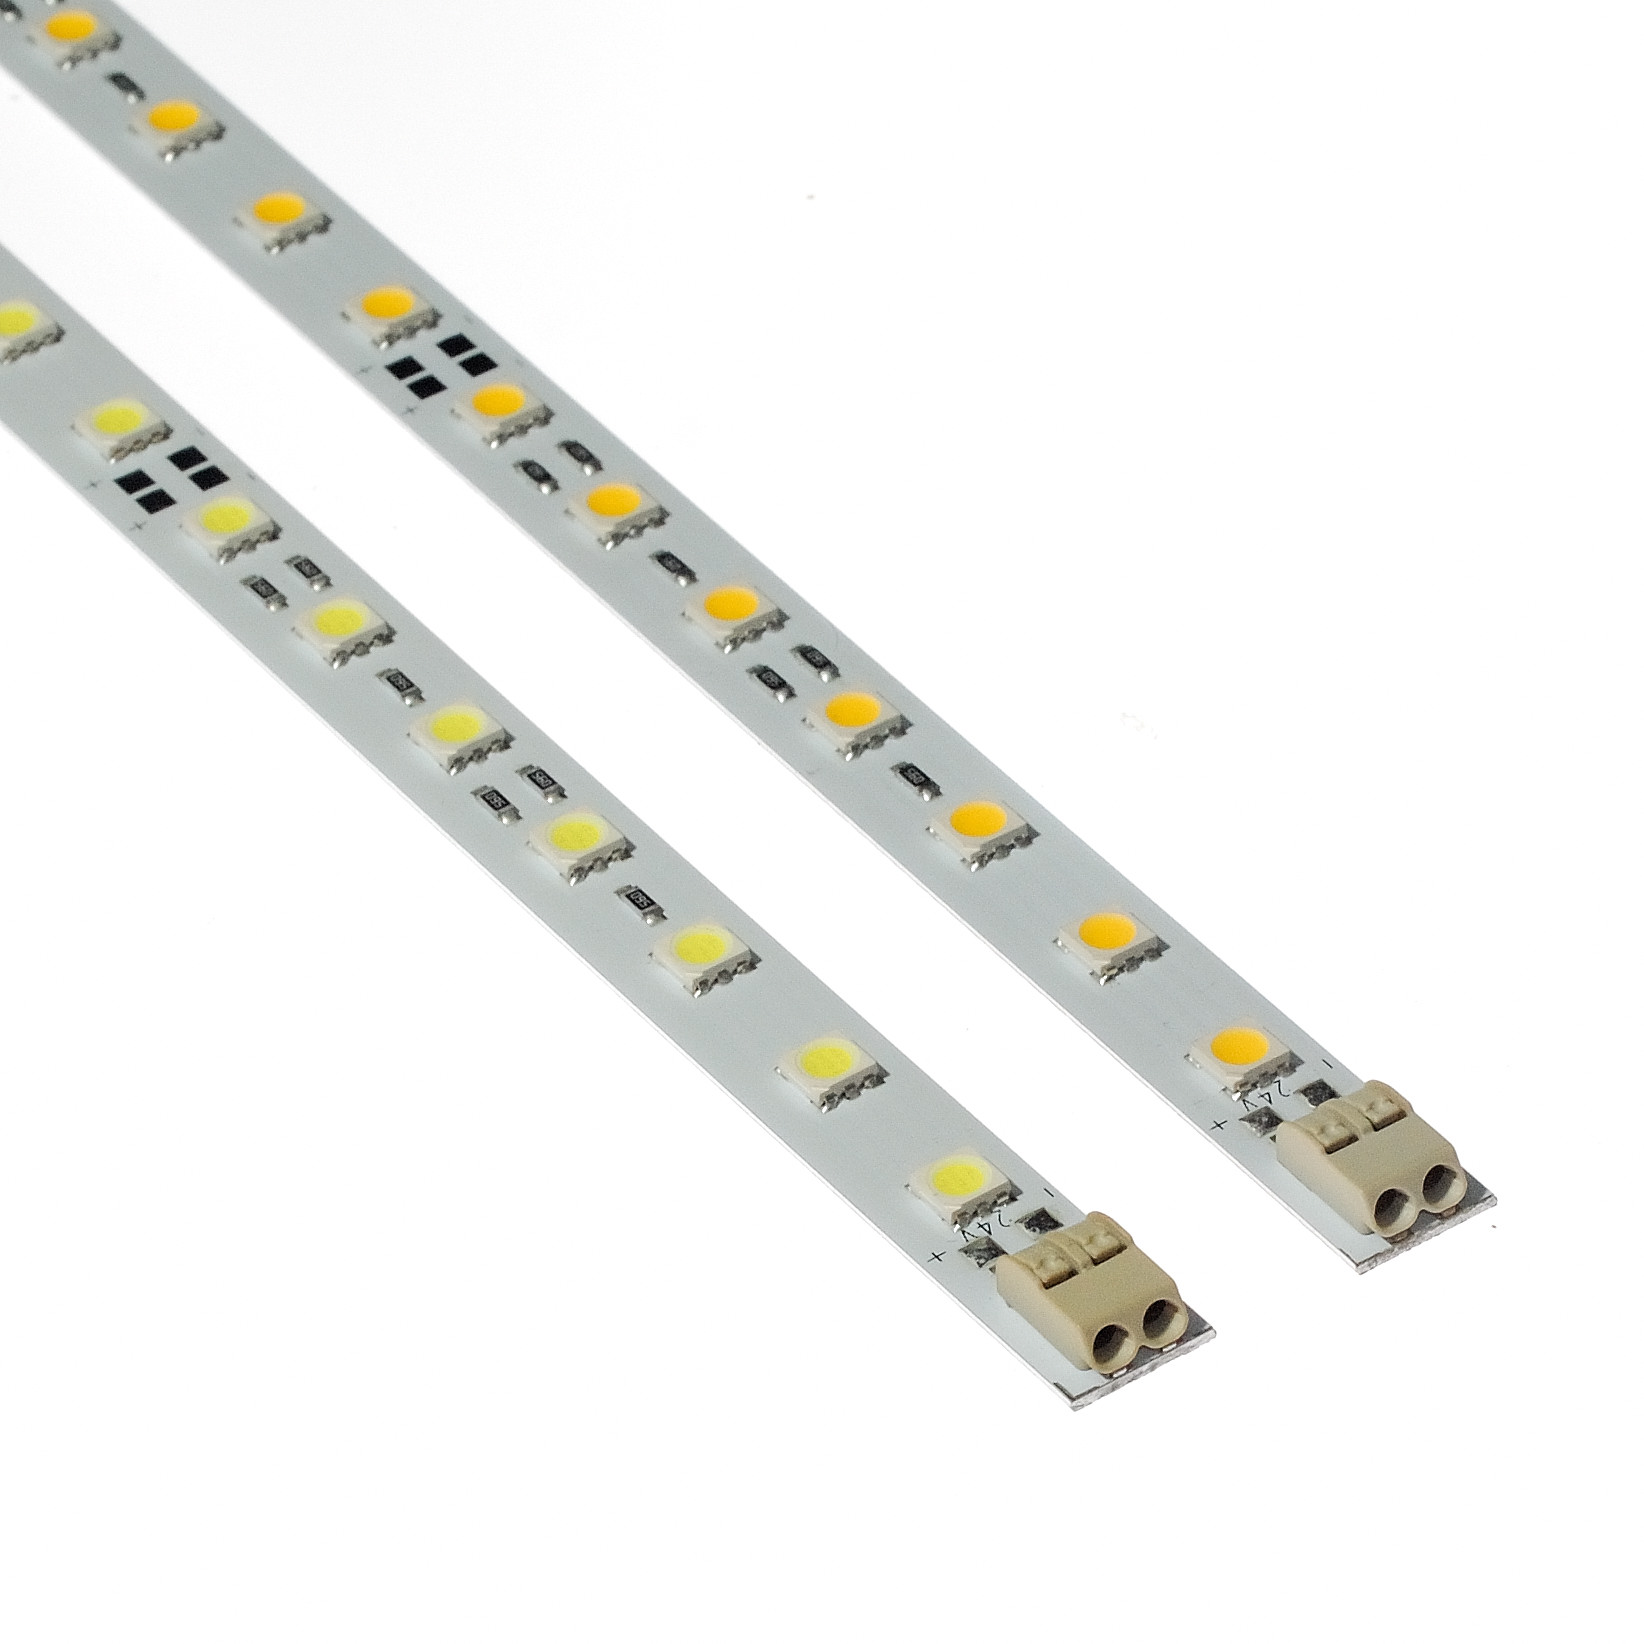 Rigid led strip lights linear light bar rigid led lighting 24vdc daylight rigid deco linear strip light bar aloadofball Choice Image